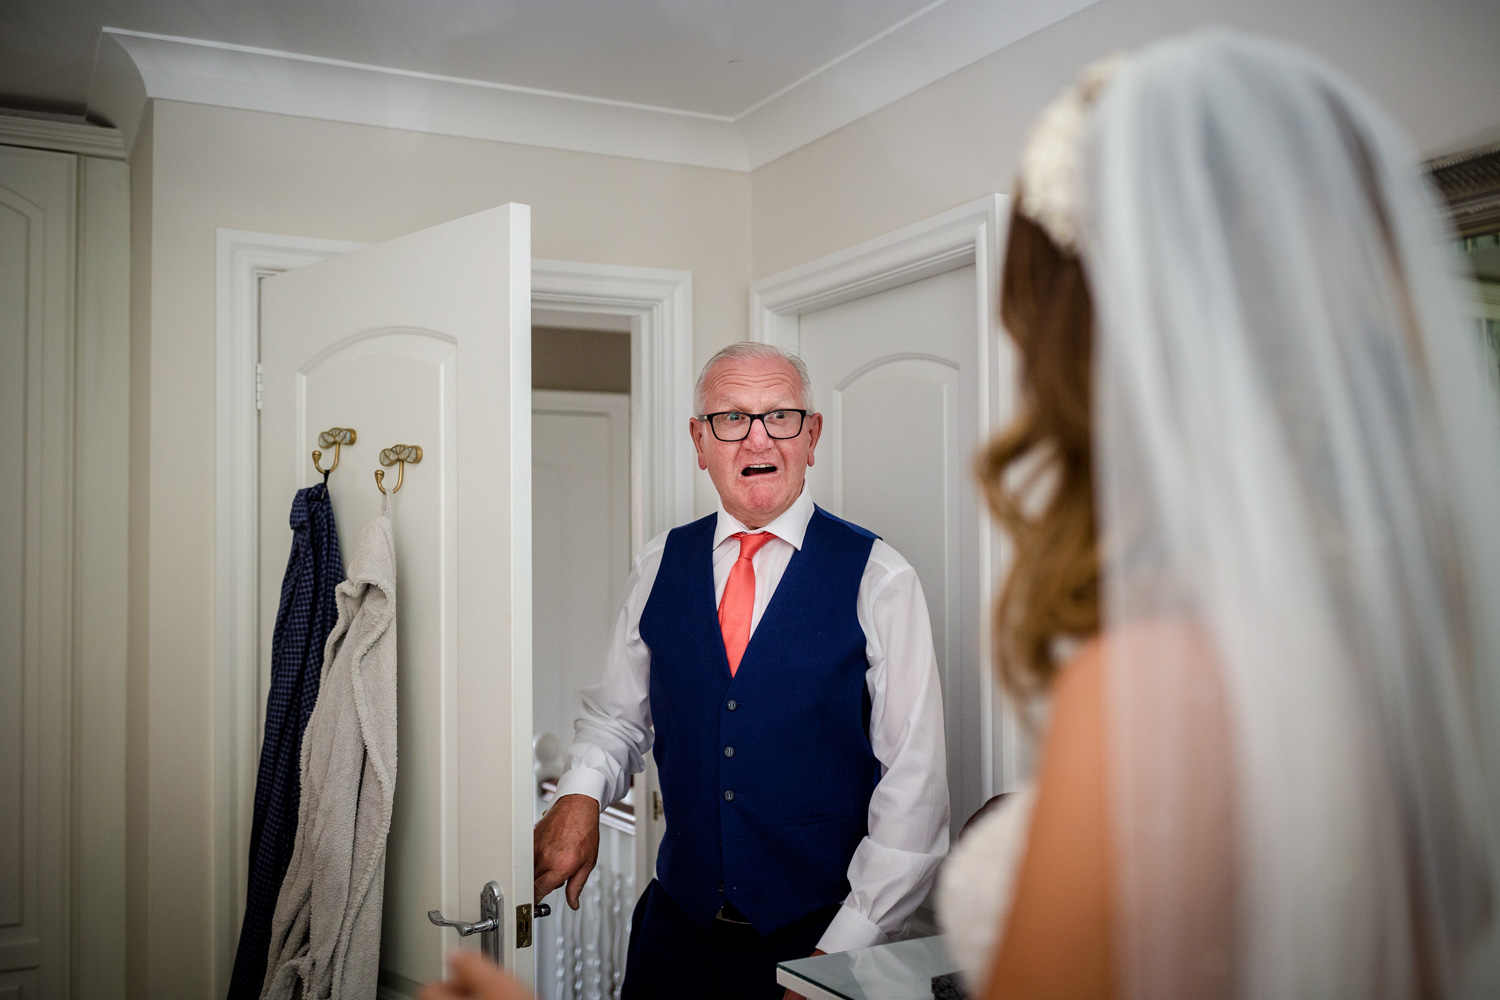 Father of the bride sees his daughter in her wedding dress for the first time